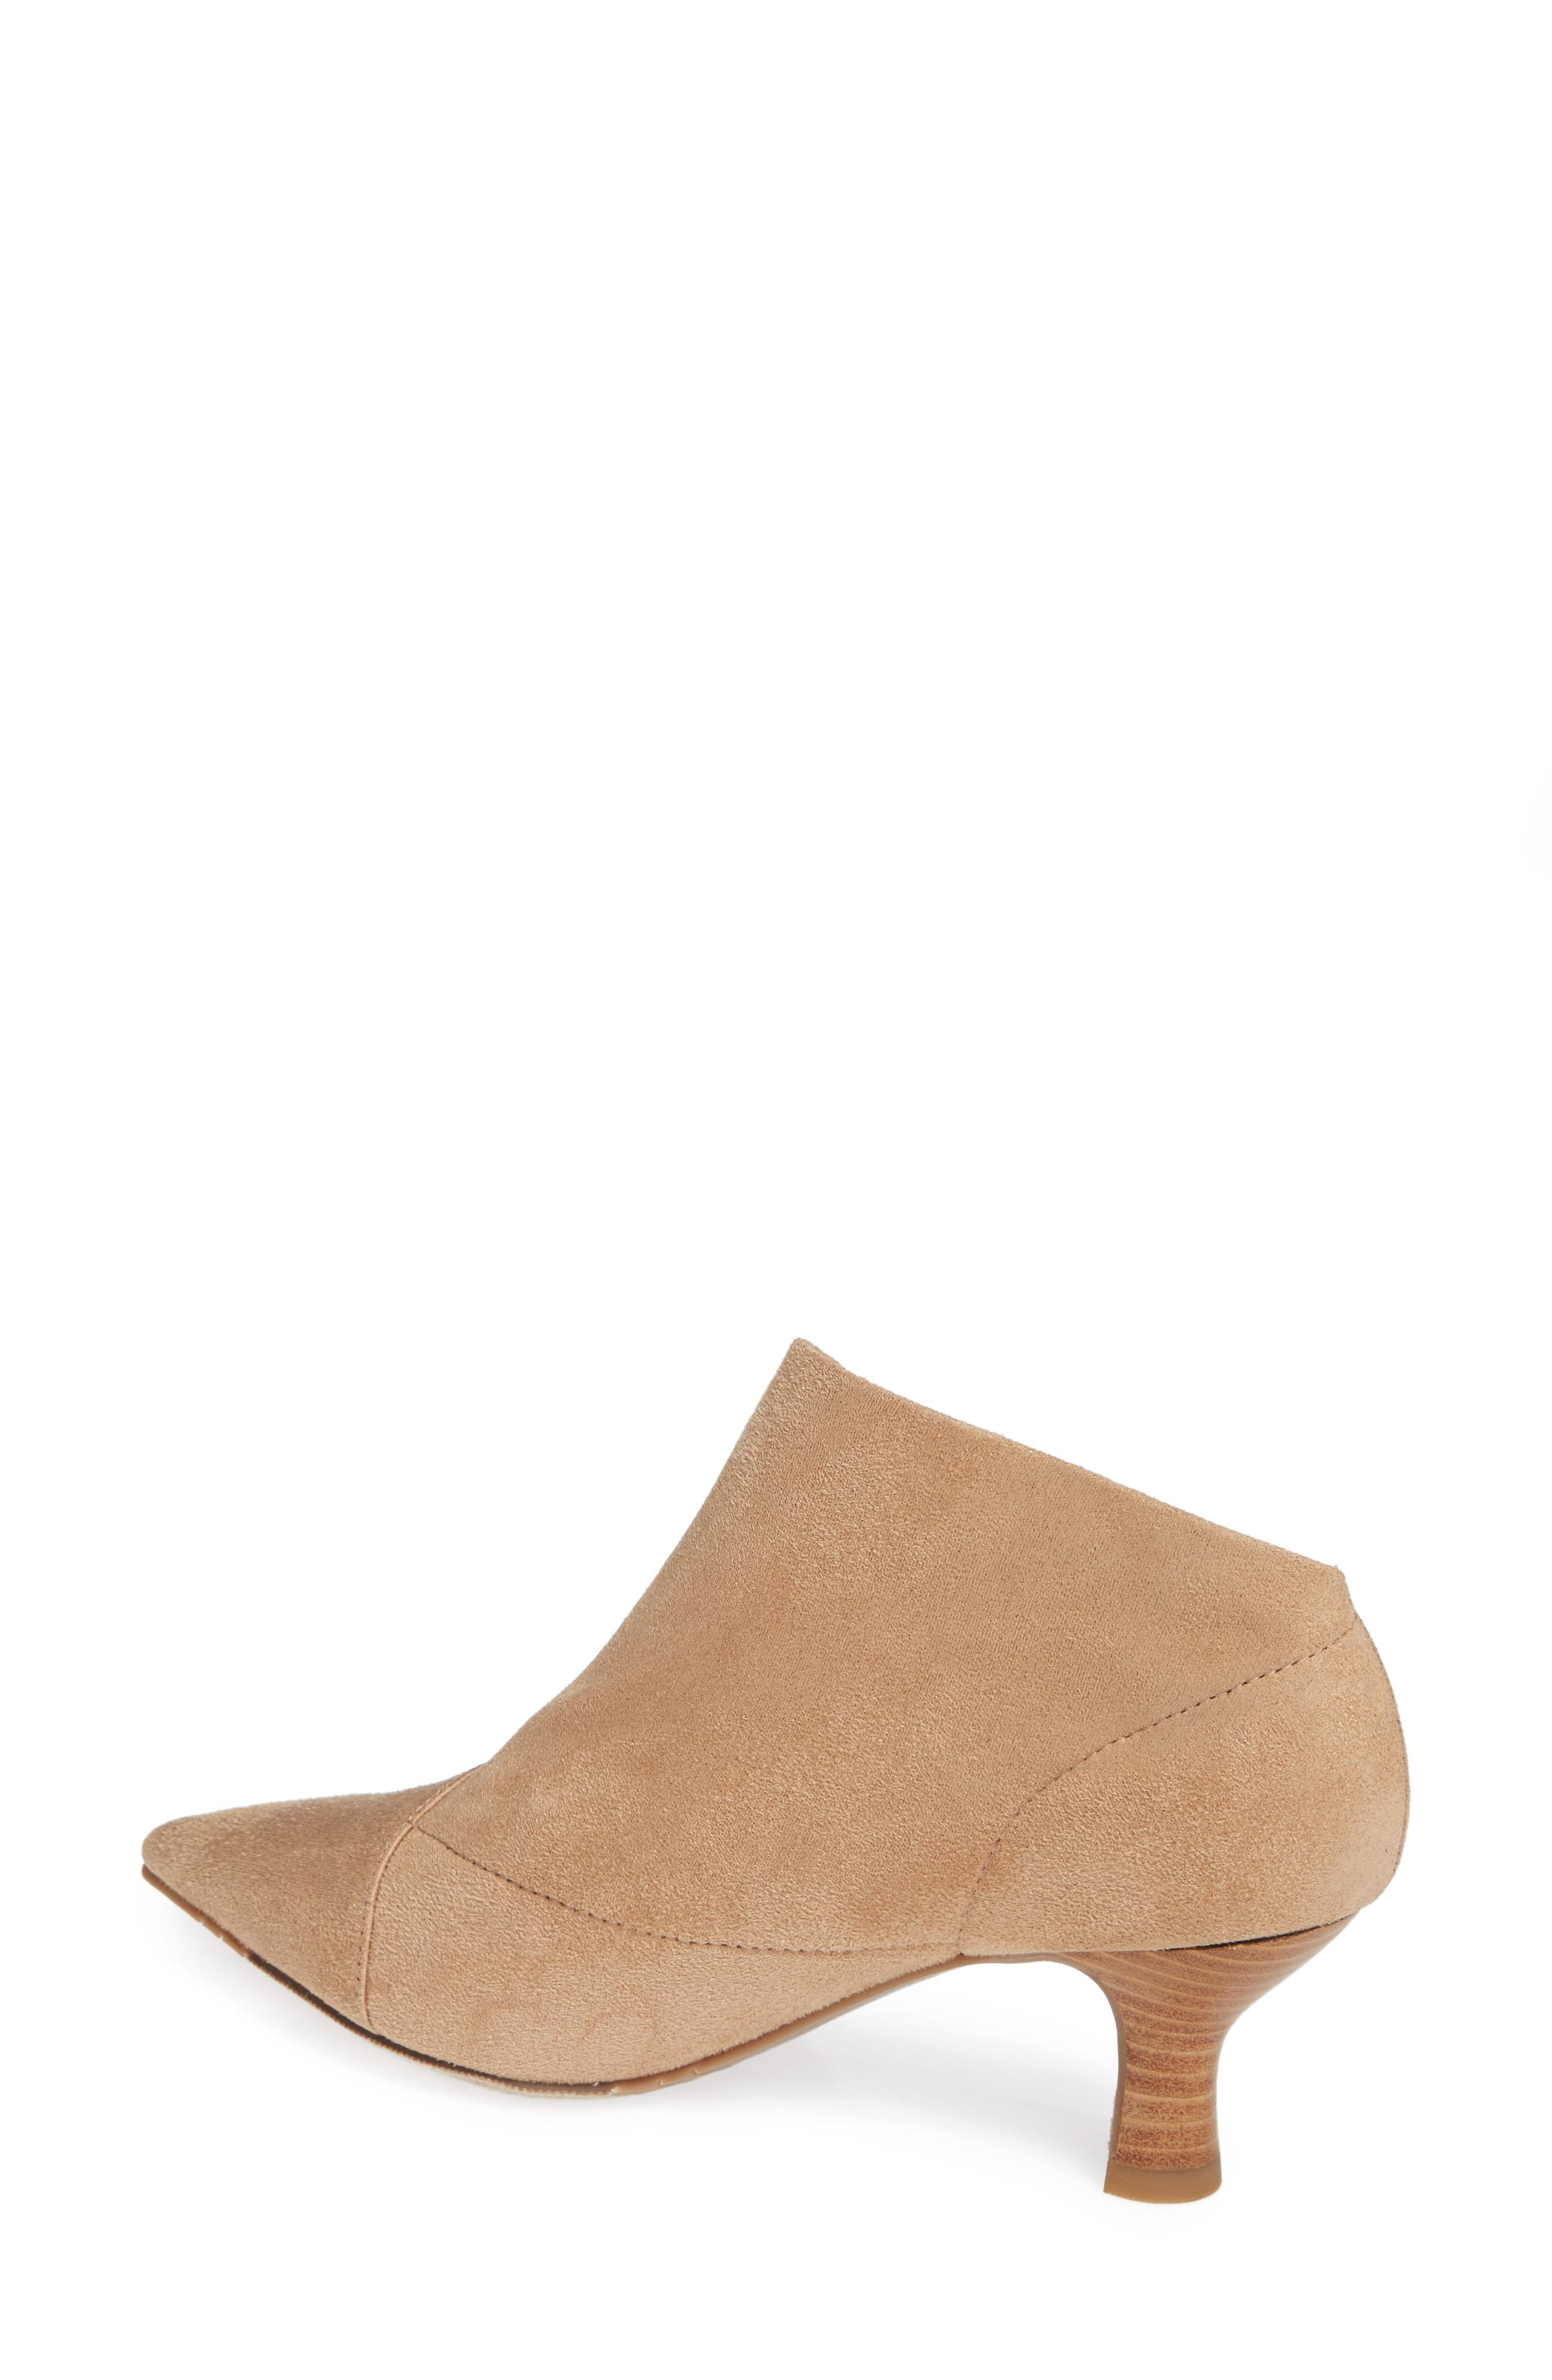 Hayes Pointy Toe Bootie,                             Alternate thumbnail 2, color,                             OAT SUEDE